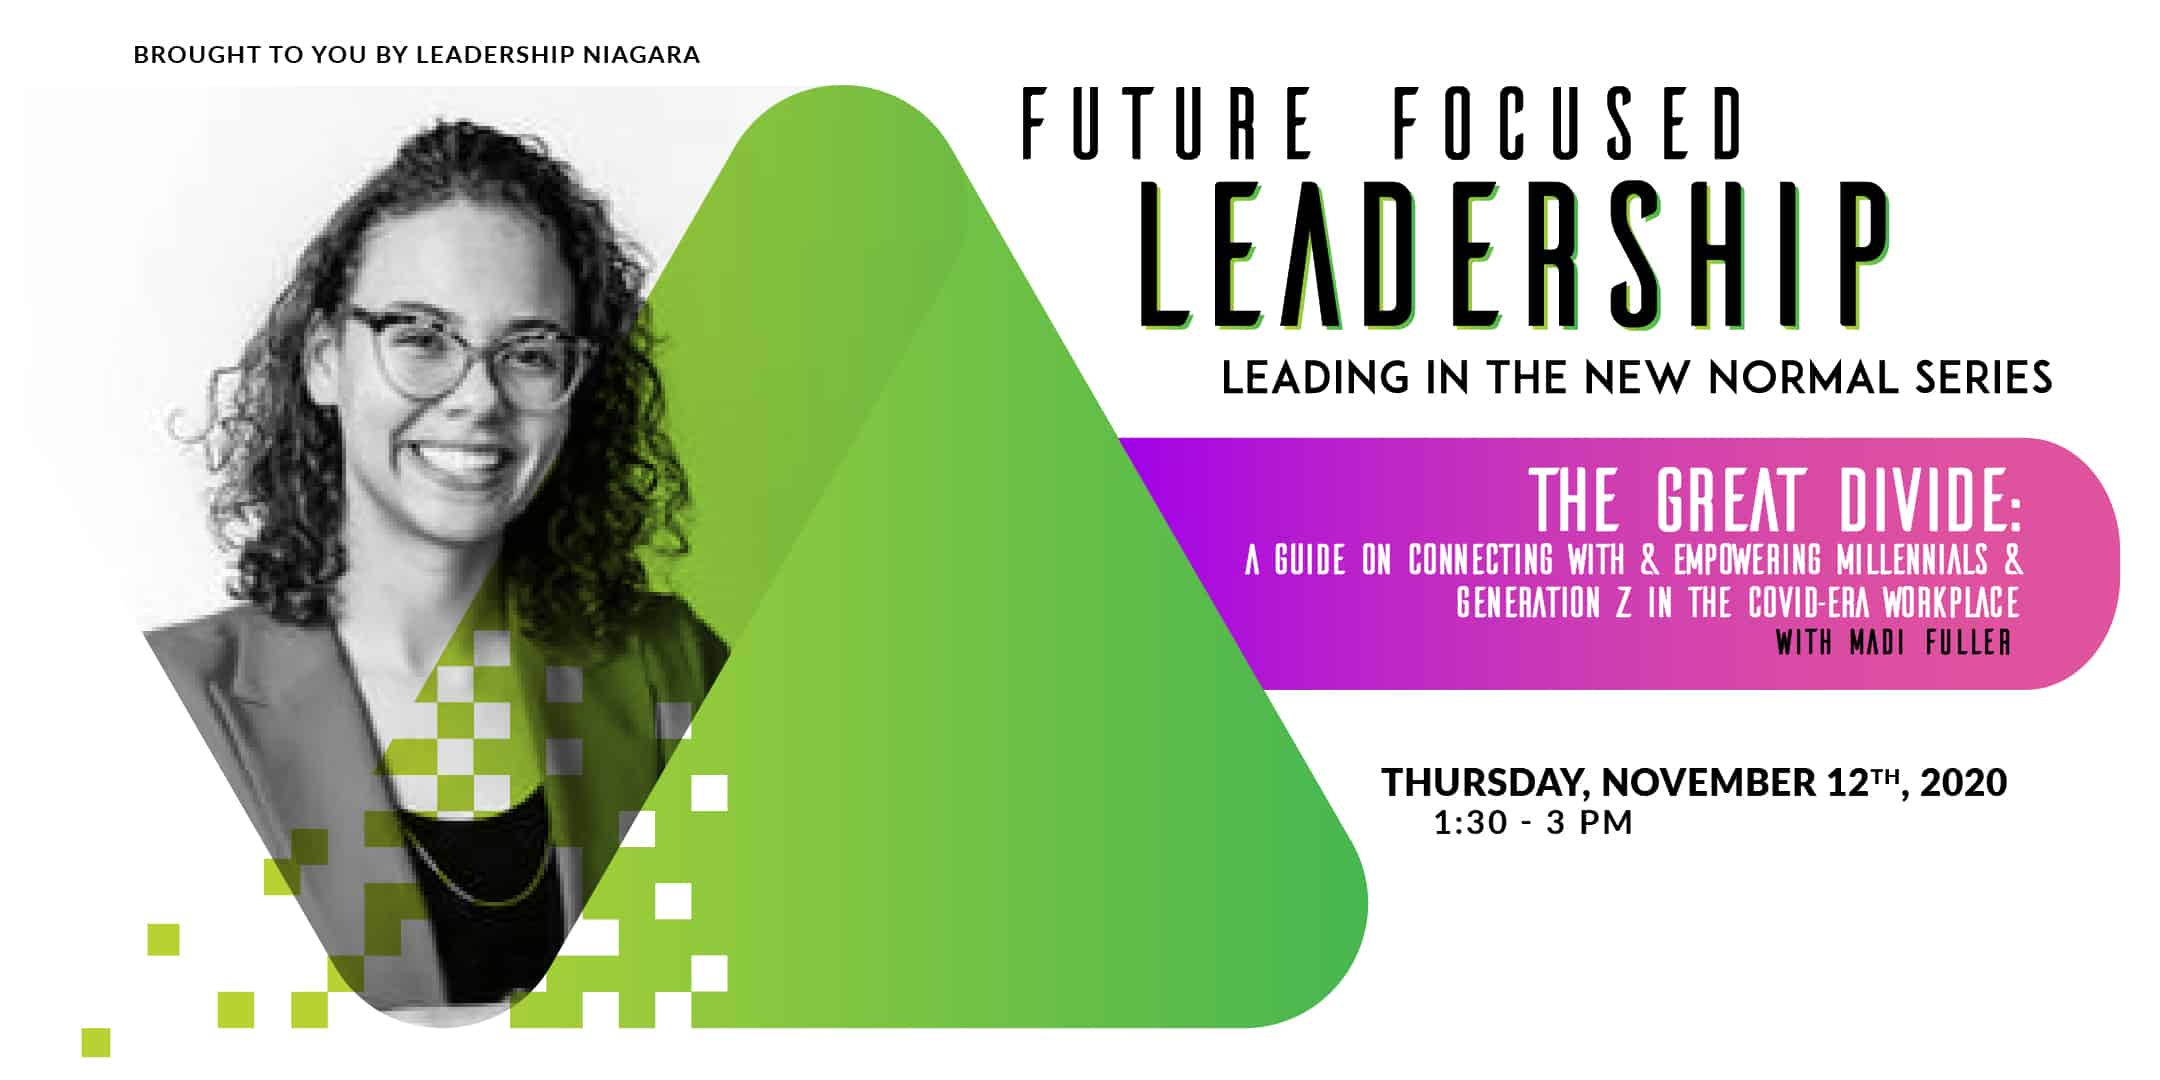 Madi Fuller - Future Focused Leadership series, Career Success Specialist - Juno College of Technology